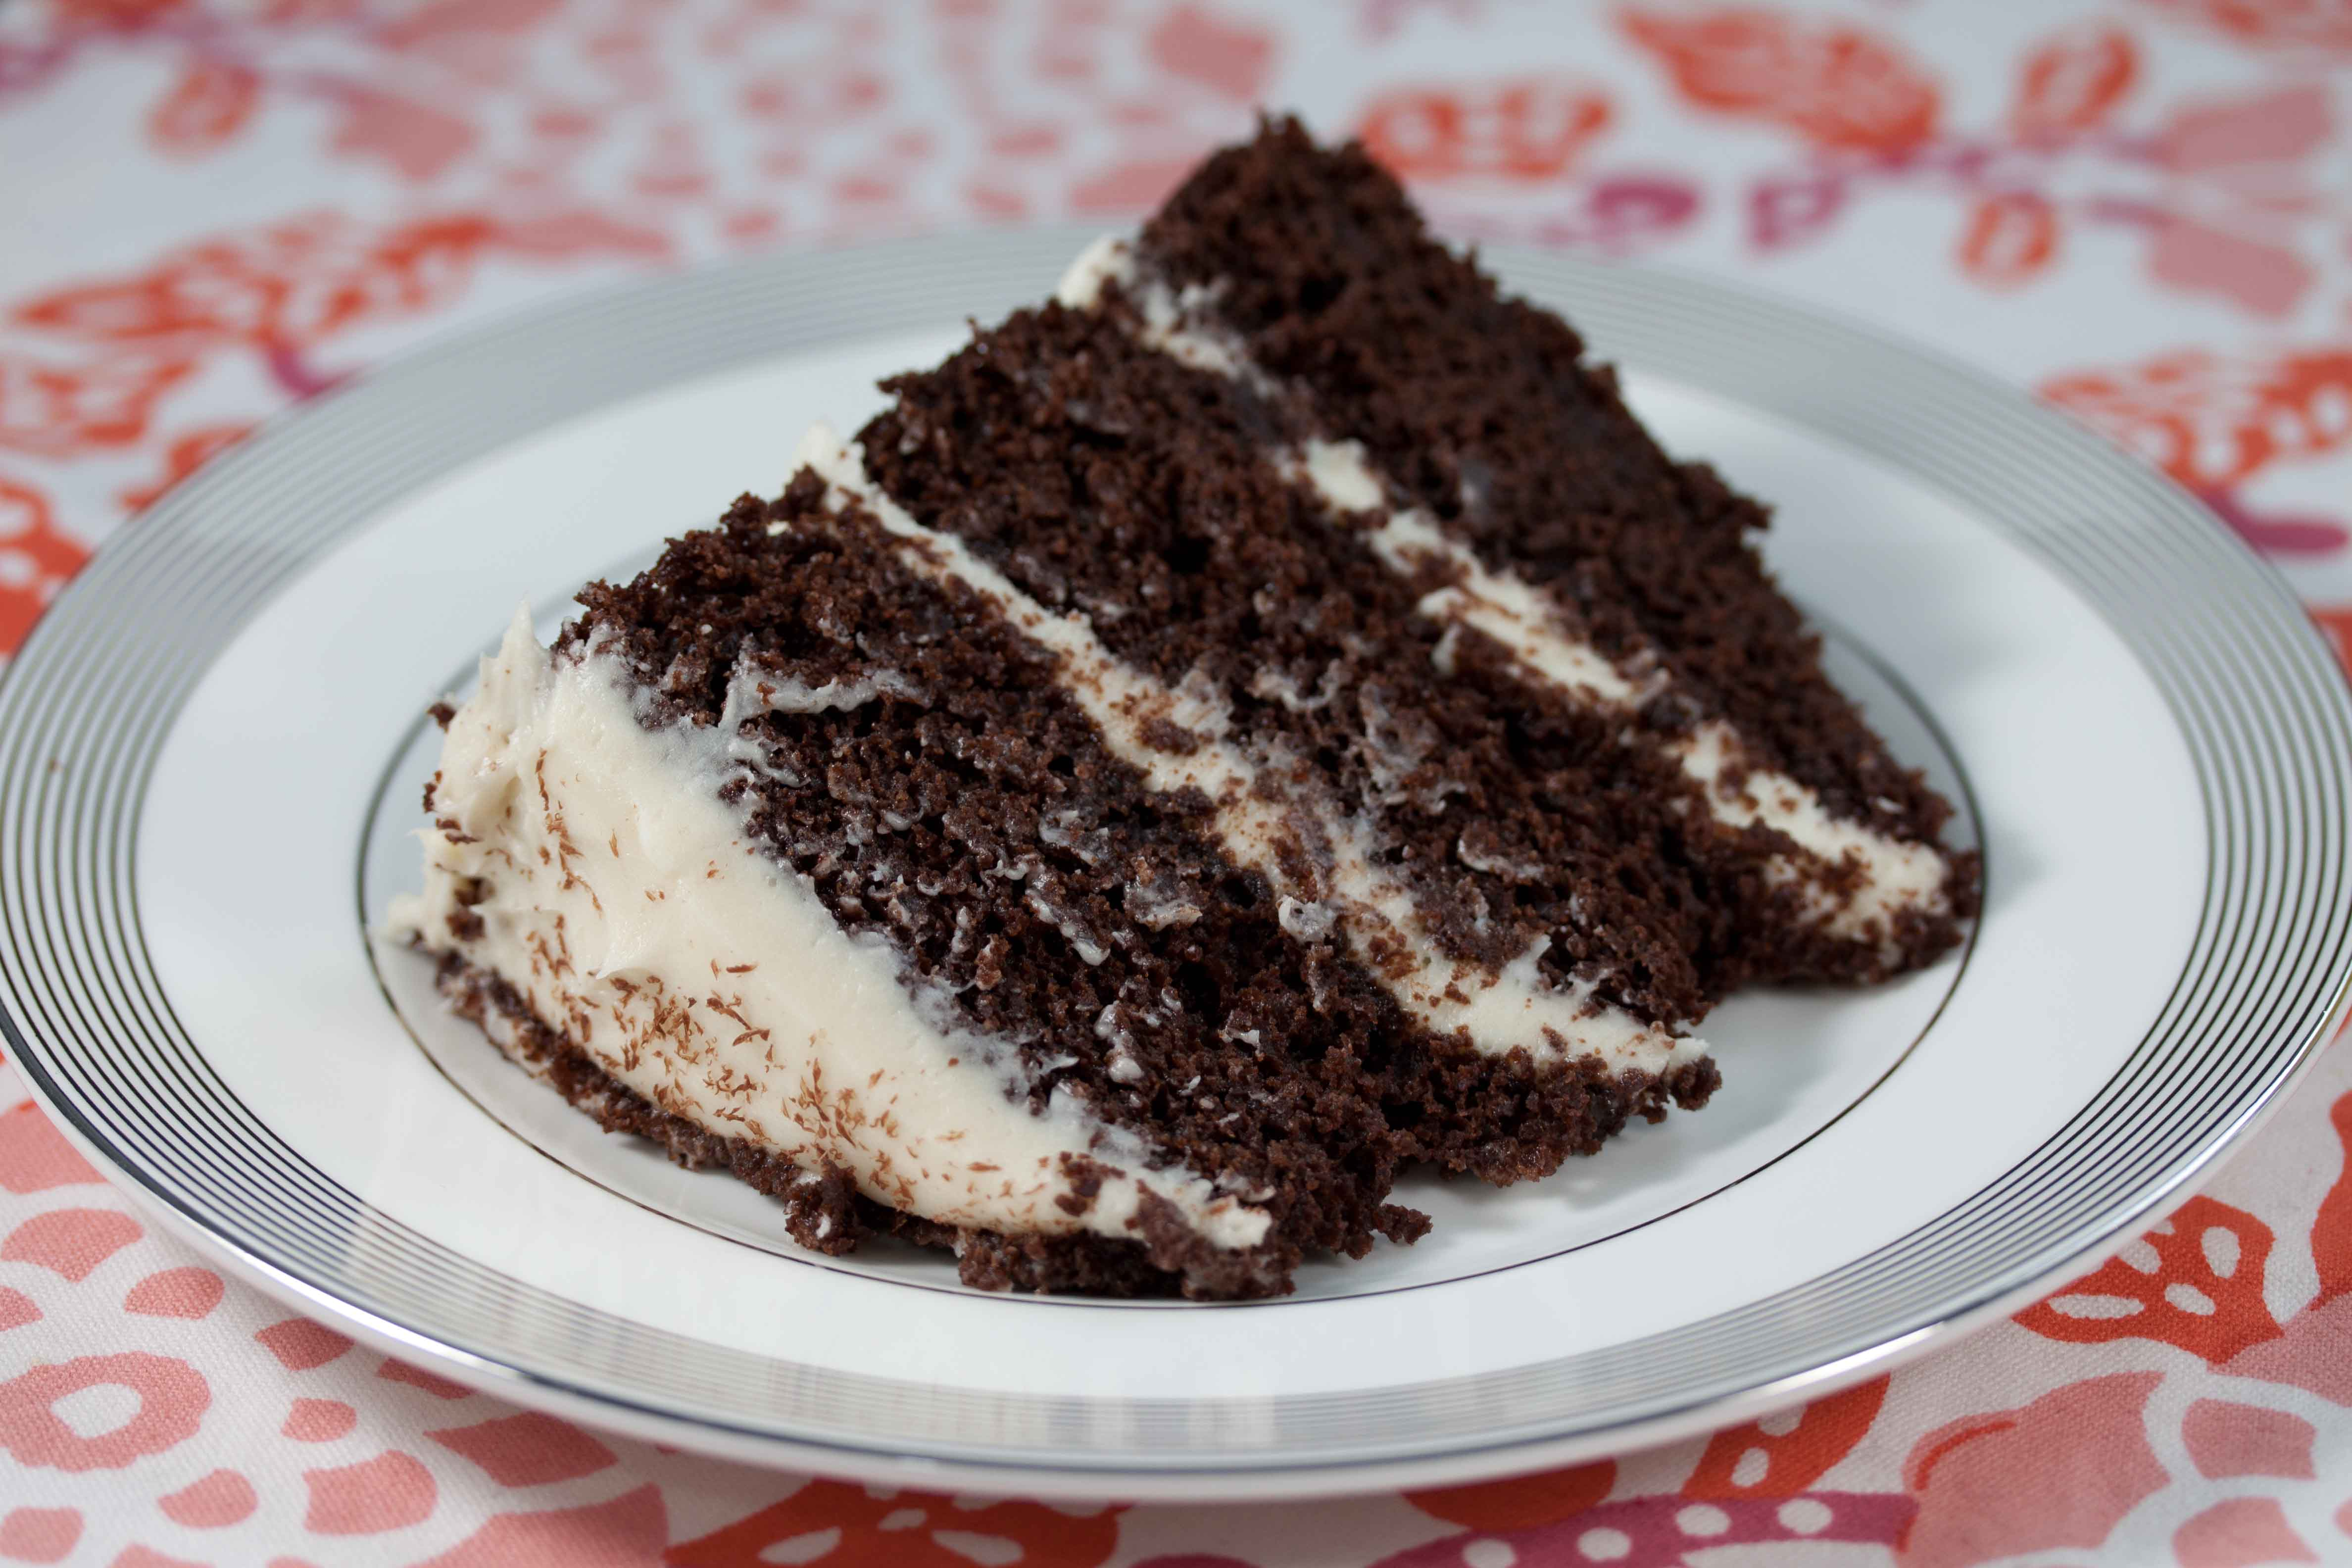 Cake With Chocolate Cream Cheese Frosting : chocolate cake with white chocolate cream cheese frosting ...